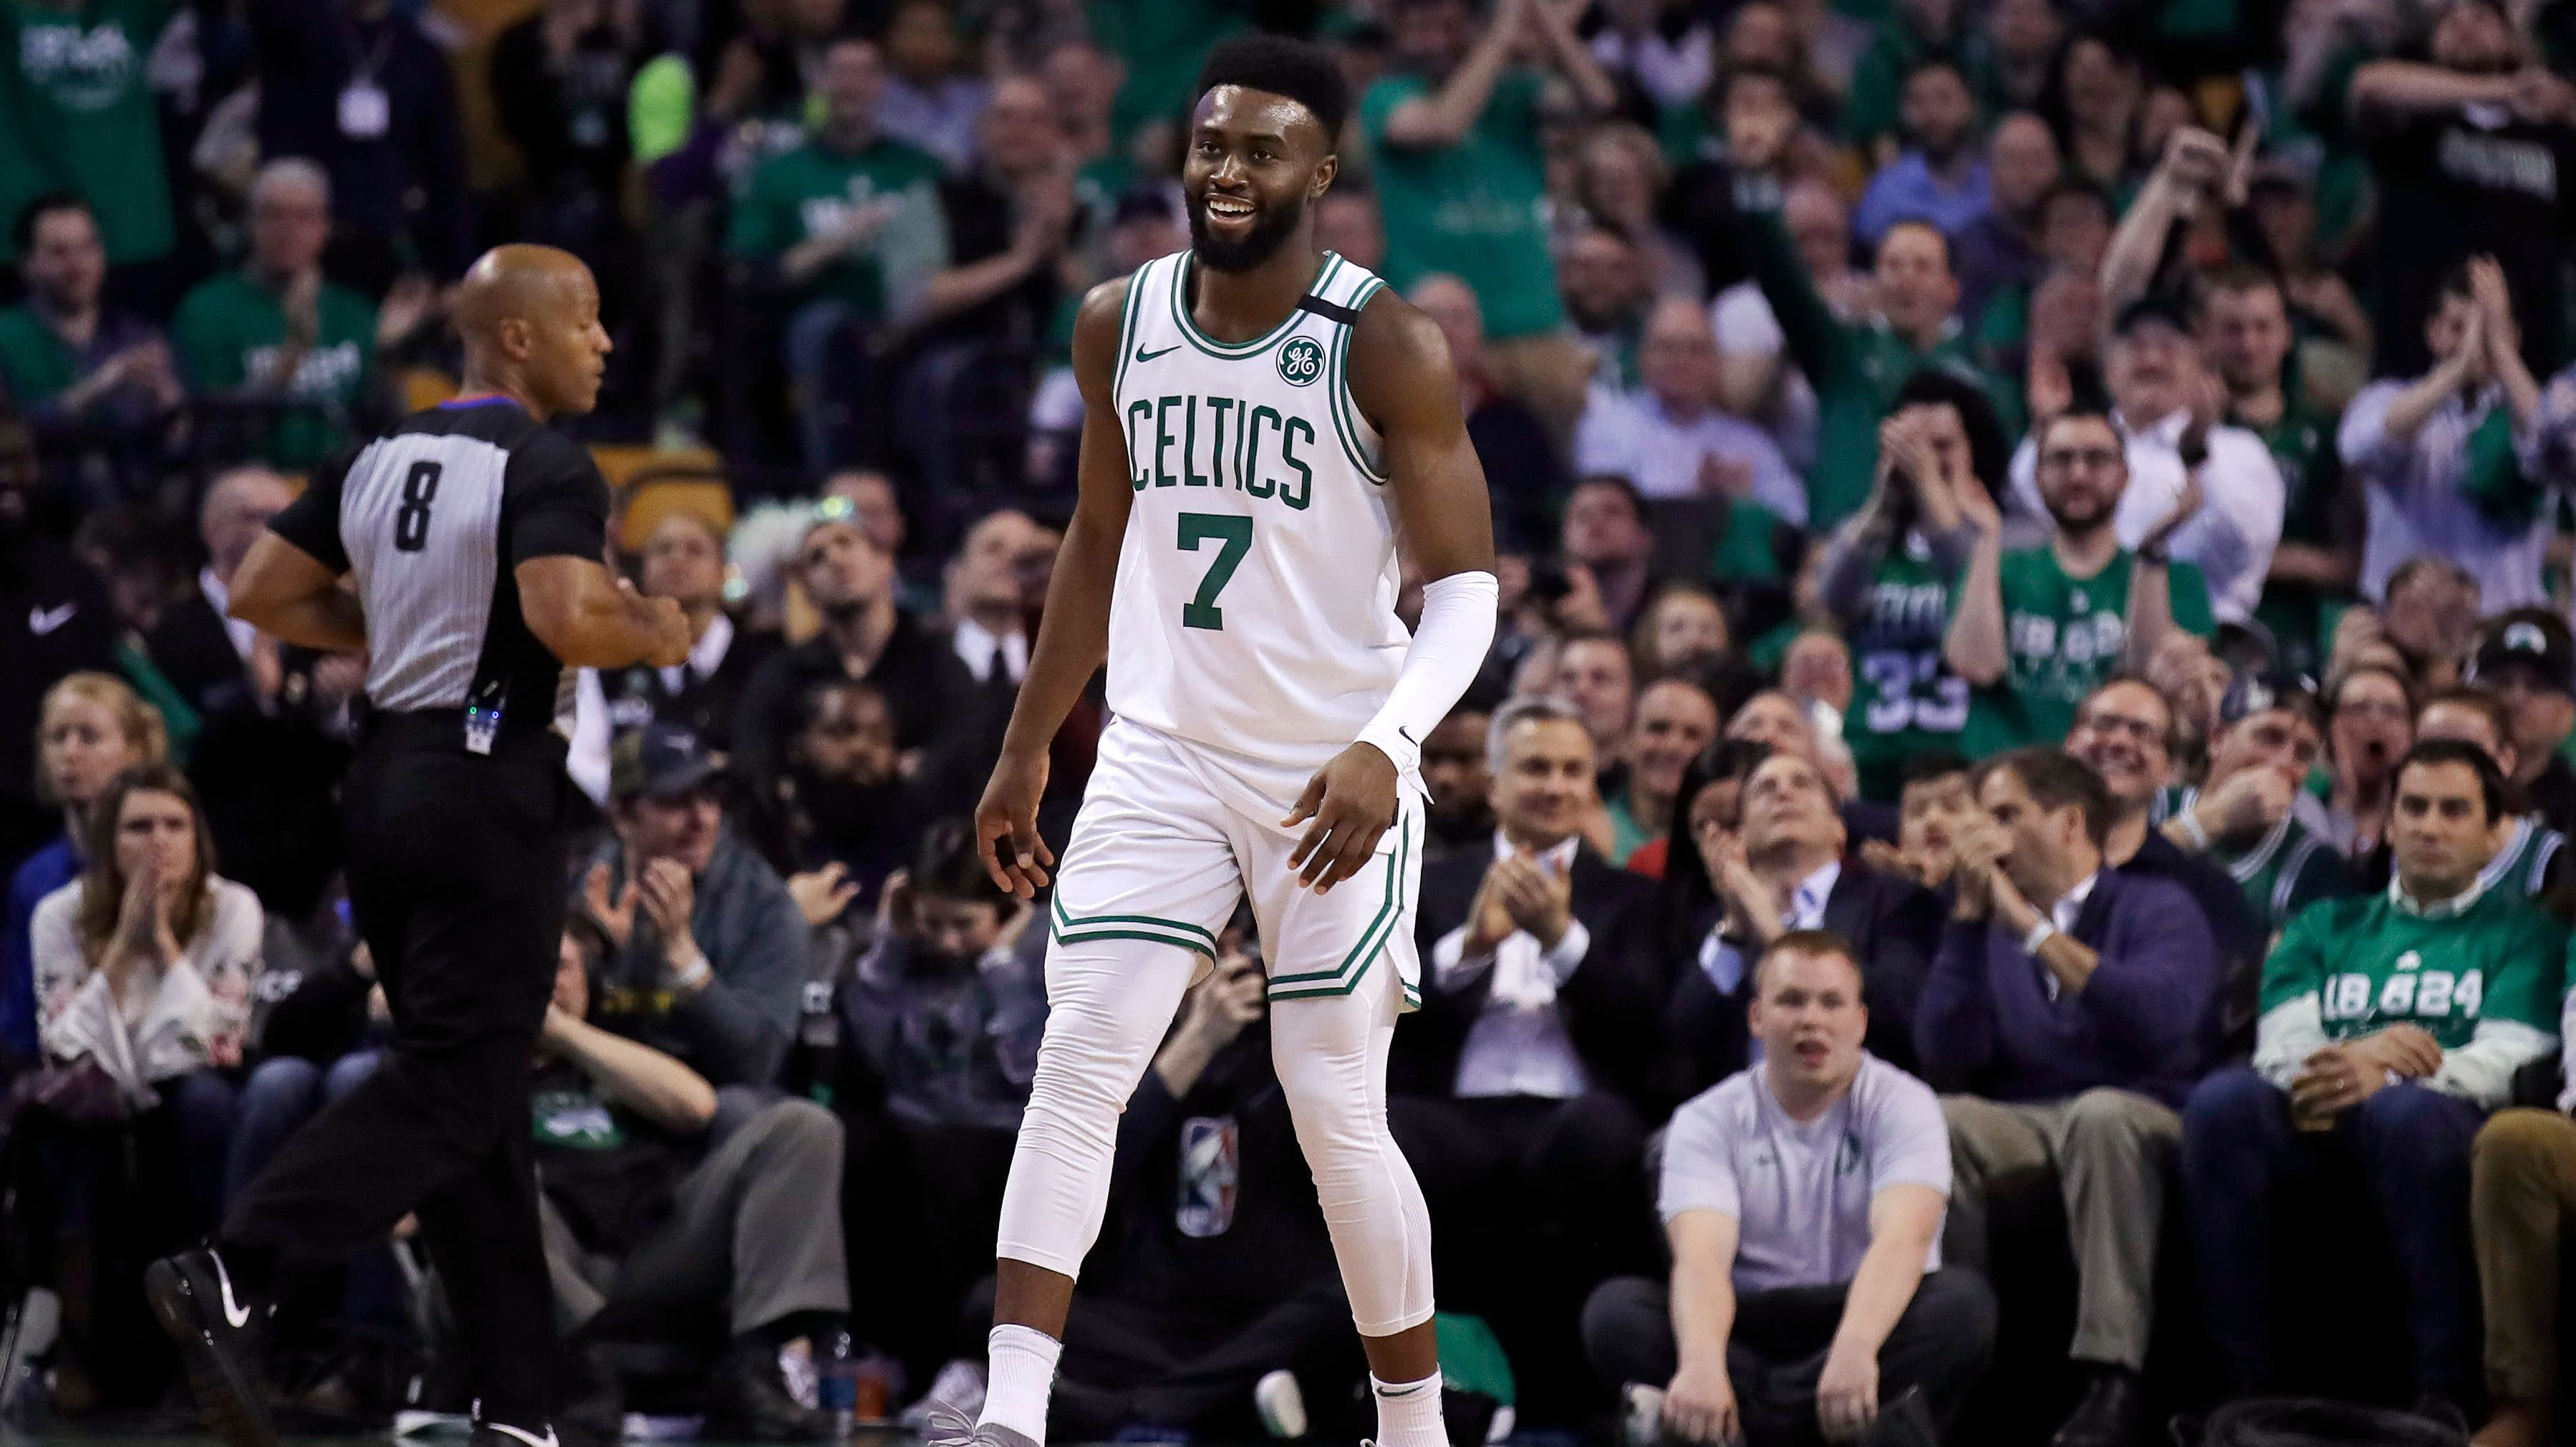 These banged-up Celtics have no business making a deep playoff run bc3617888